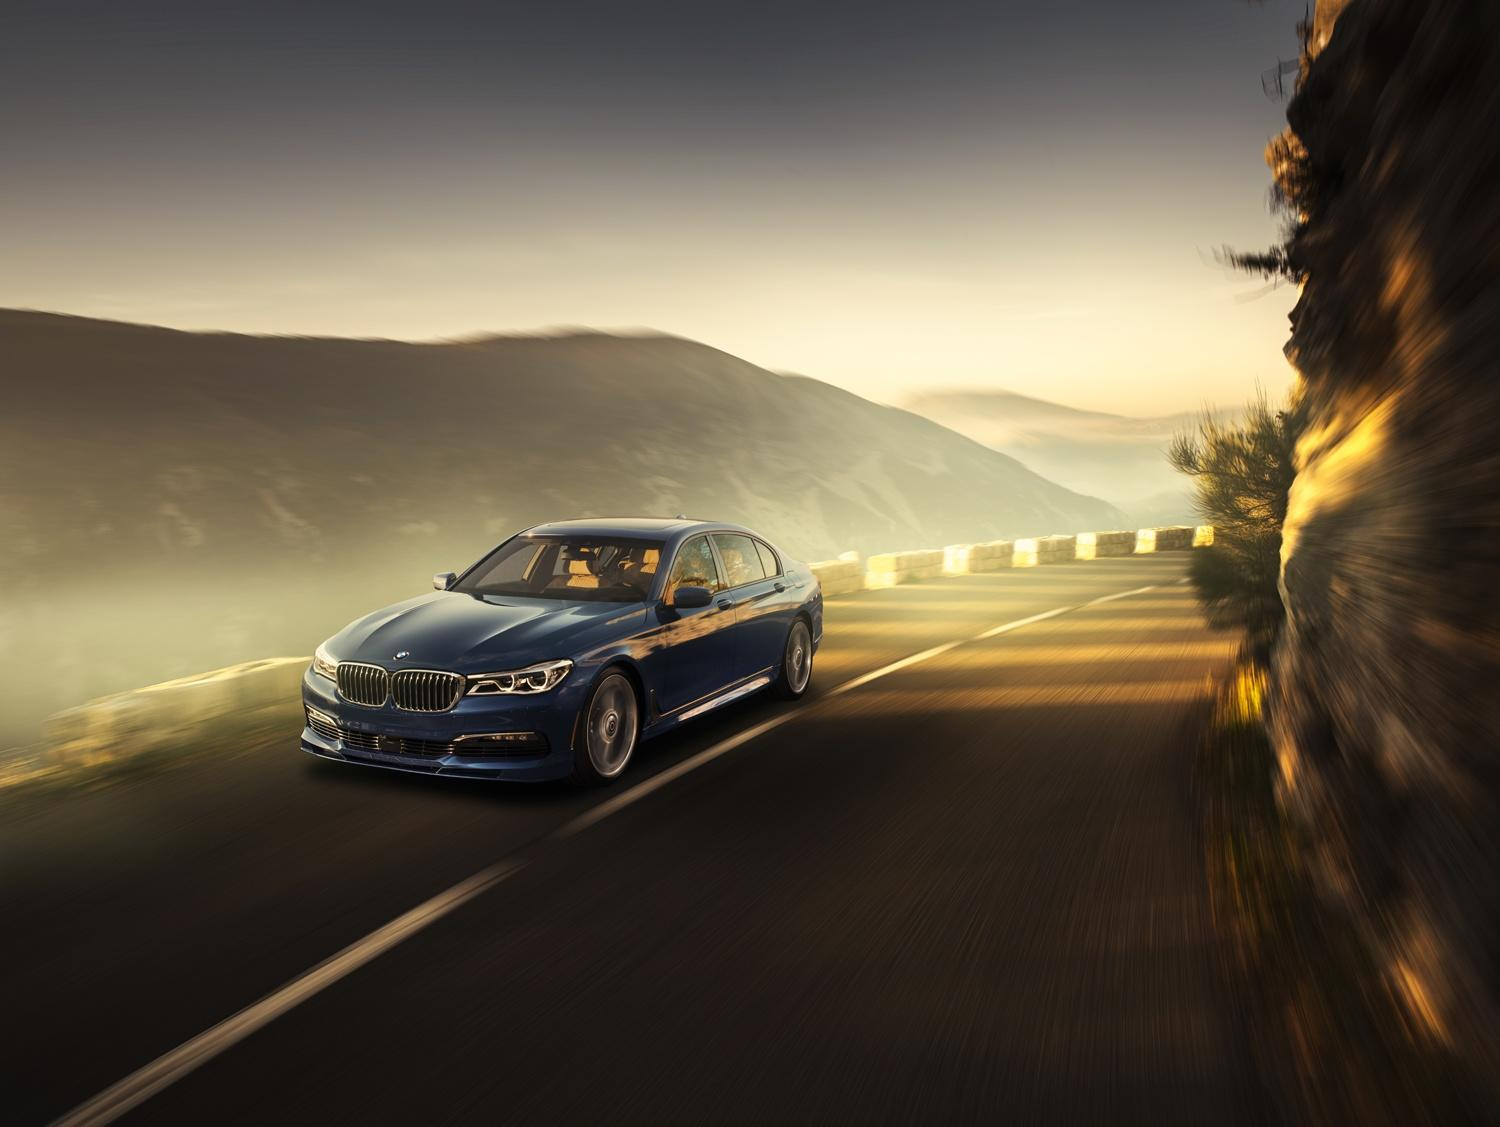 Alpina turns the 7 Series into the AMG-punching super-sedan that BMW won't build